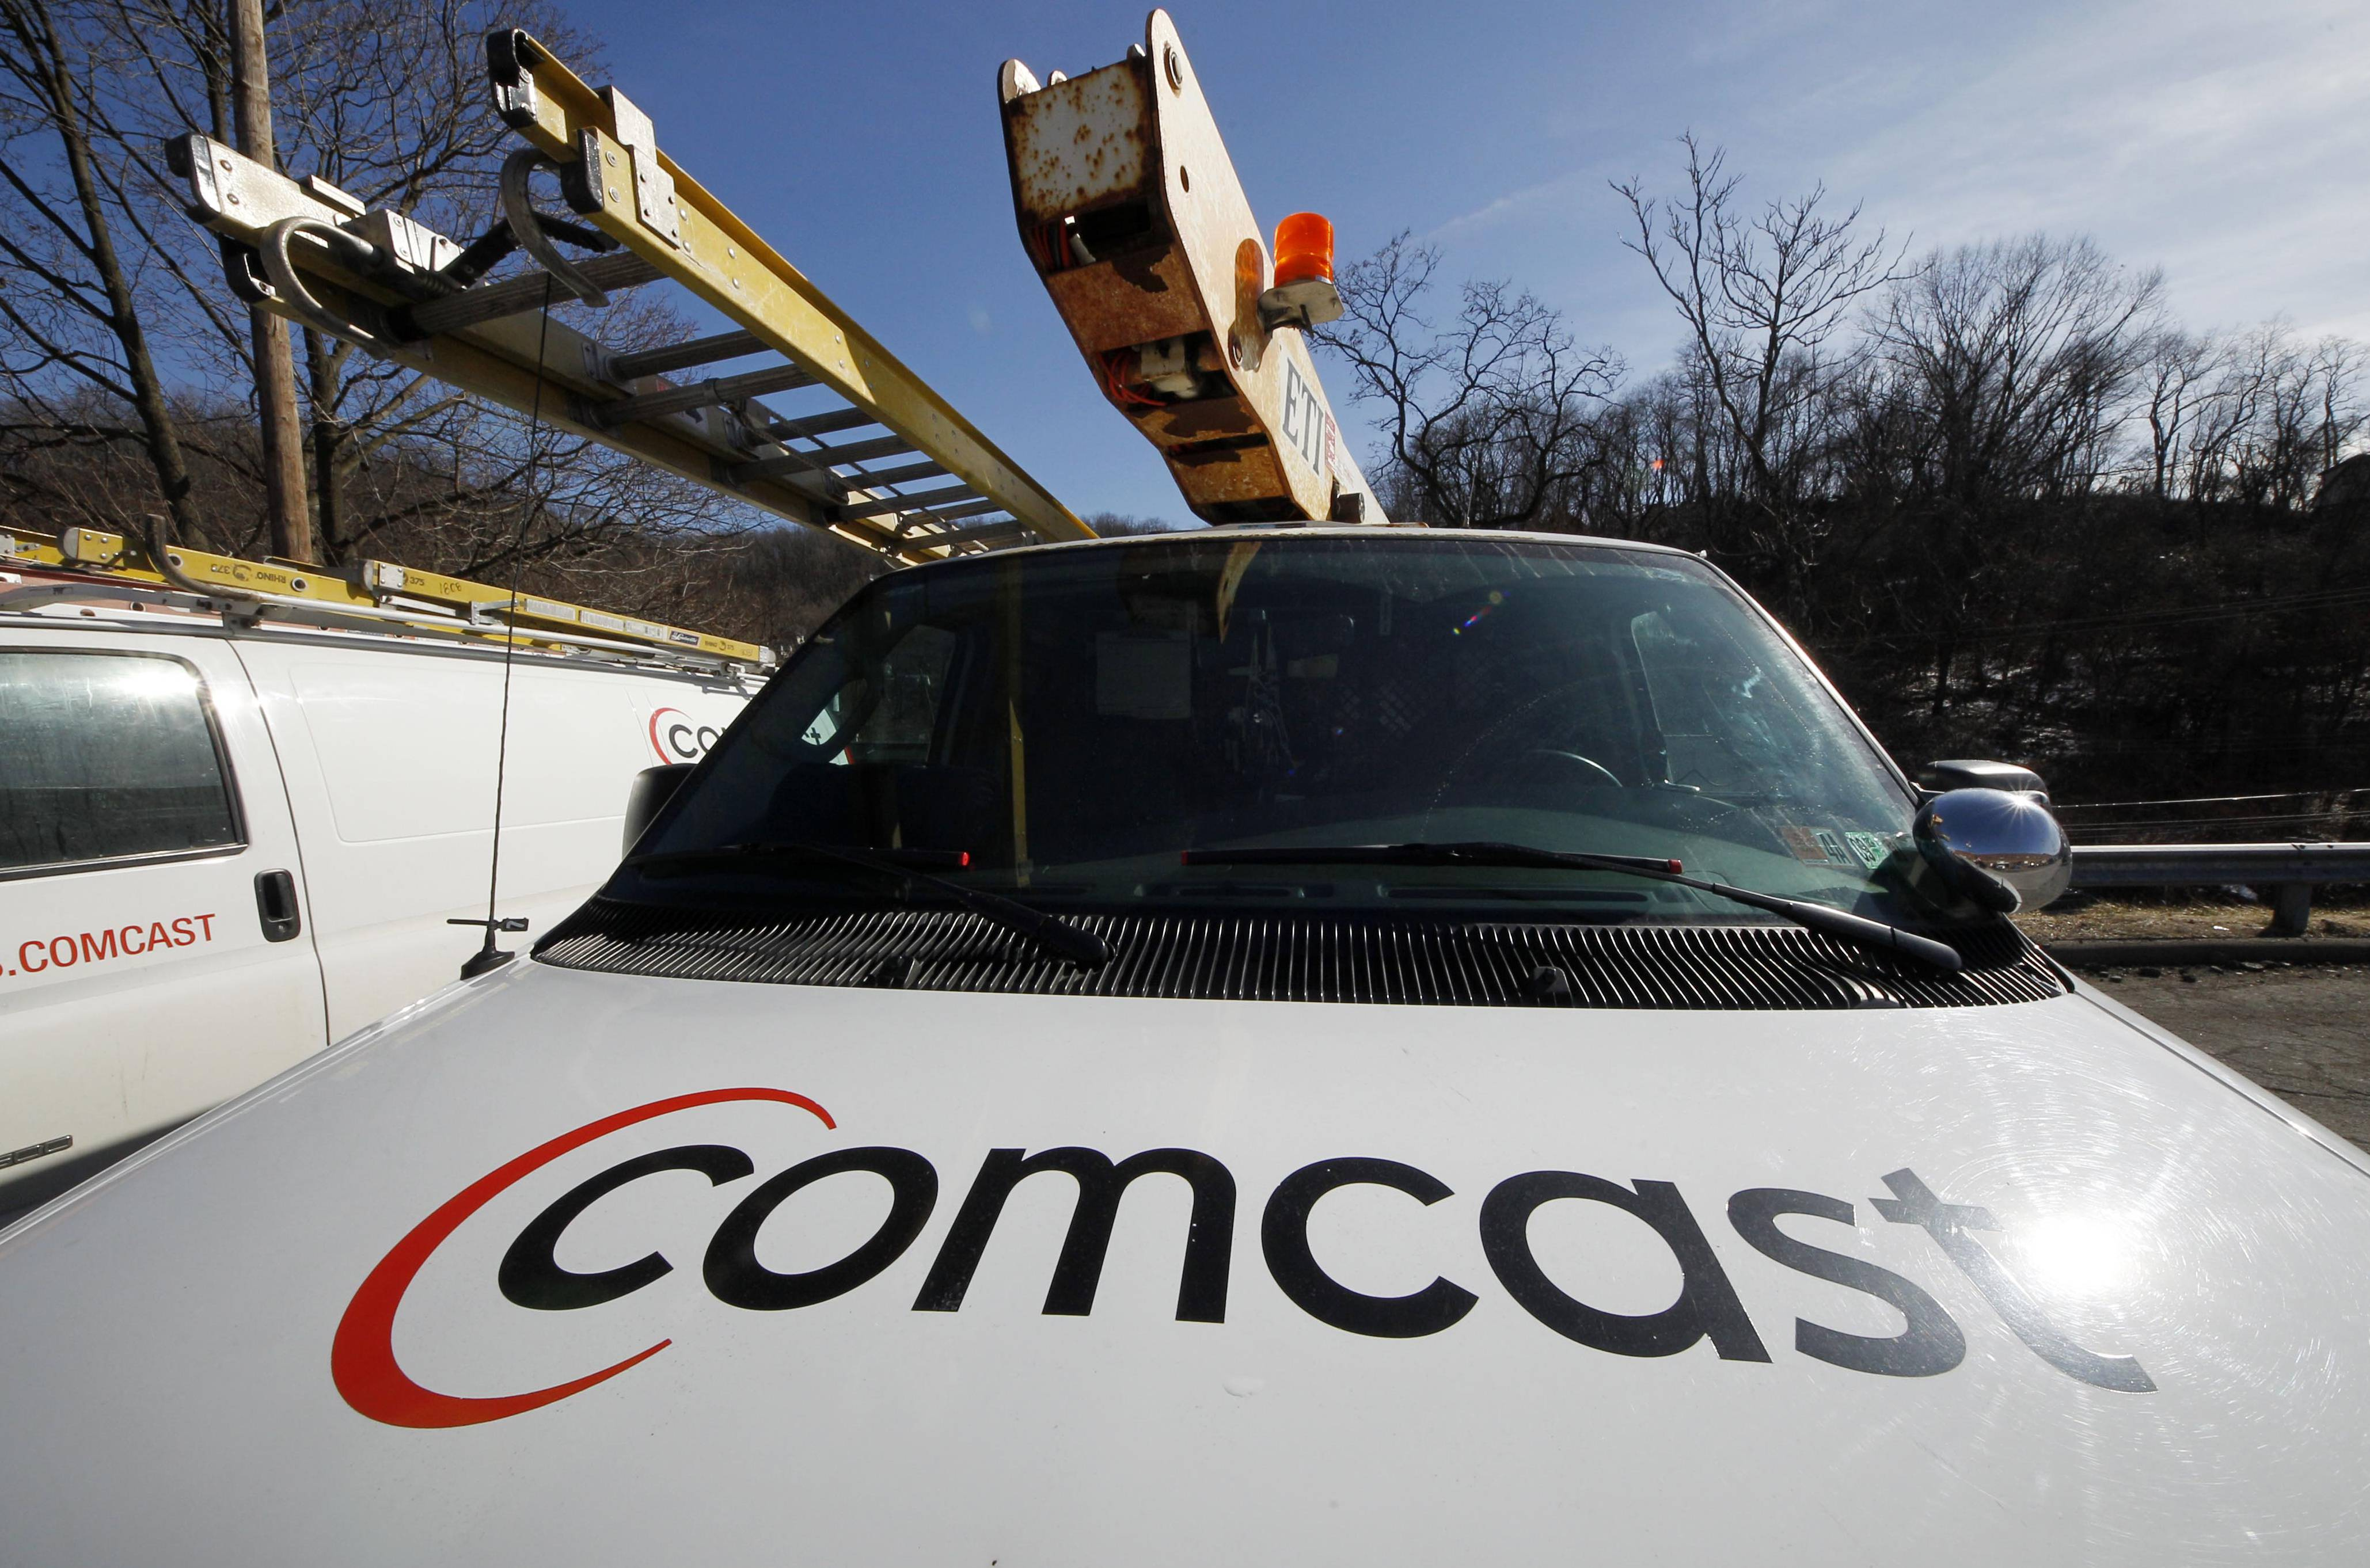 Internet speed need emerges as FCC test in Comcast deal